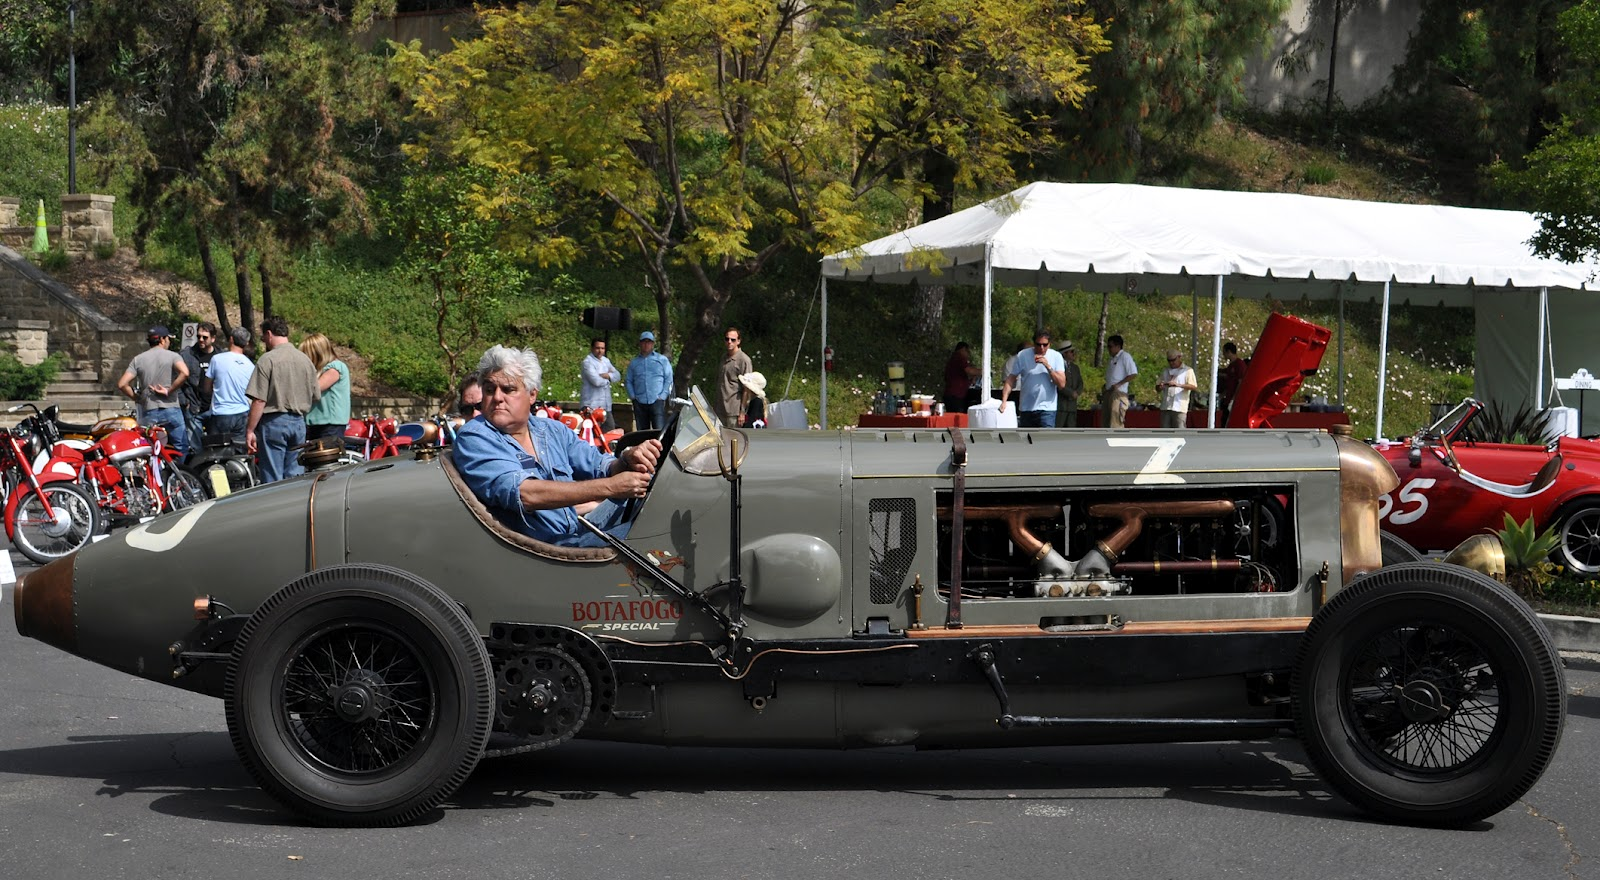 Jay Leno brought his awe inspiring 1917 race car, the Botafogo Special,  powered by a Fiat A12, 21.7 liter engine, to the Graystone Mansion concours!